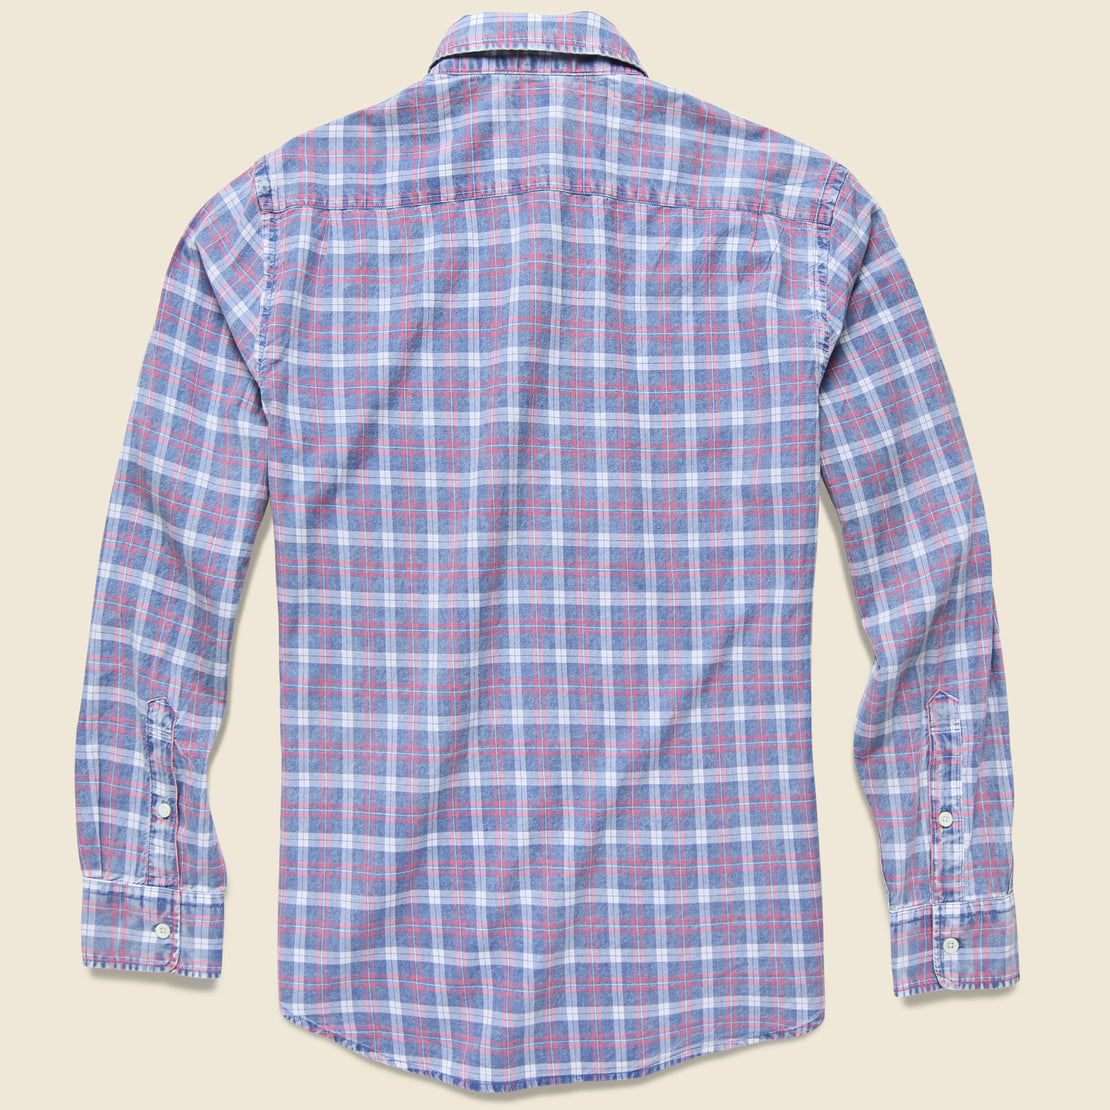 Ventura Shirt - Indigo White Plaid